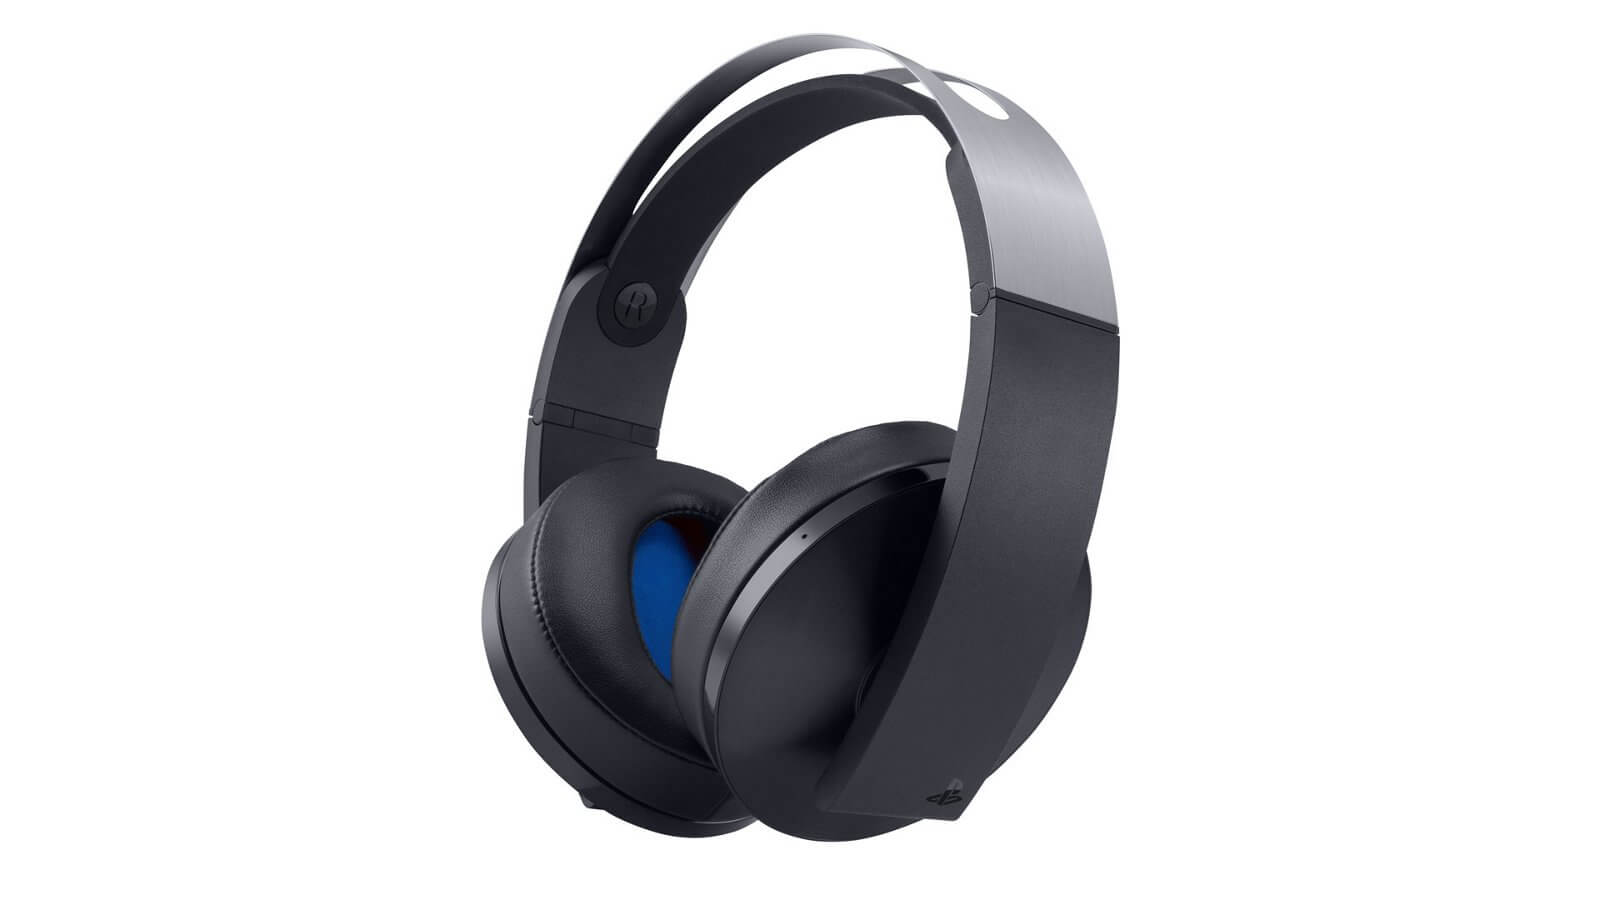 Ps4 gaming headset platinum with enhanced battery life